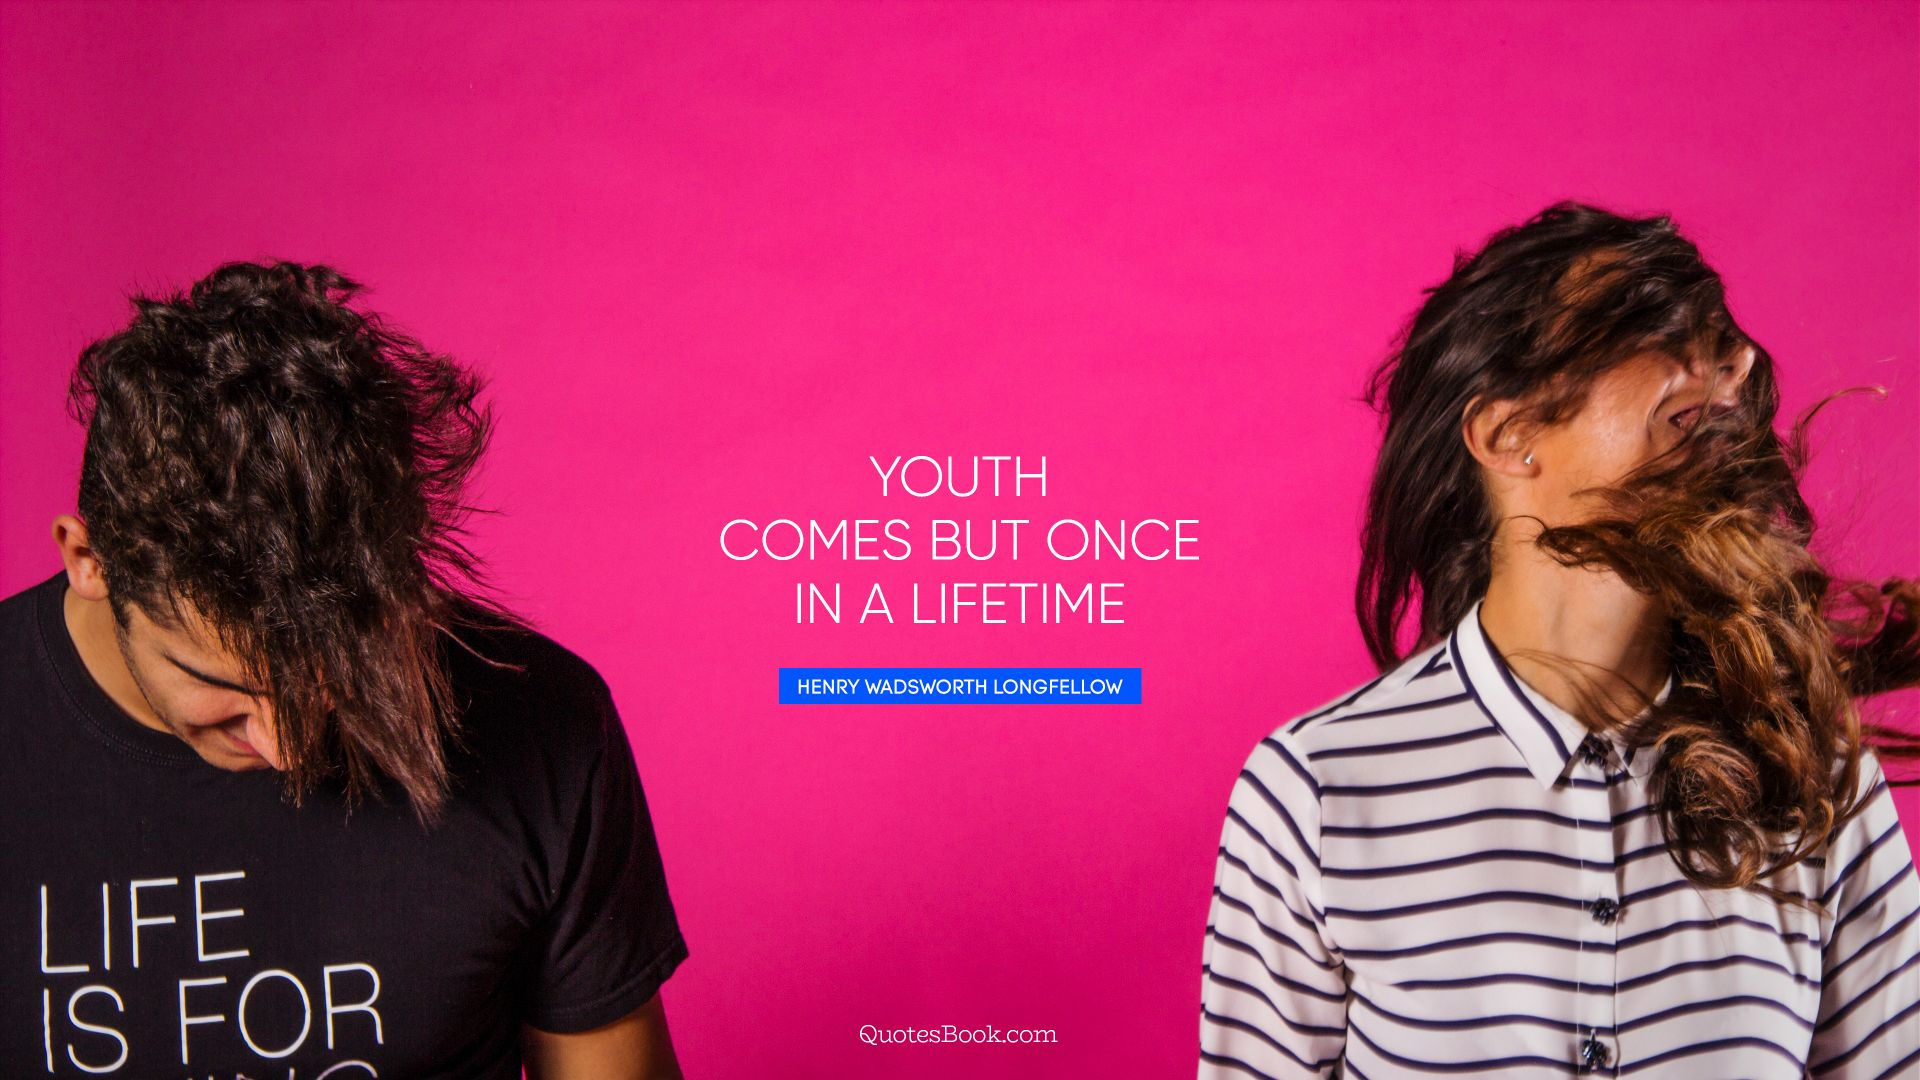 Youth comes but once in a lifetime. - Quote by Henry Wadsworth Longfellow